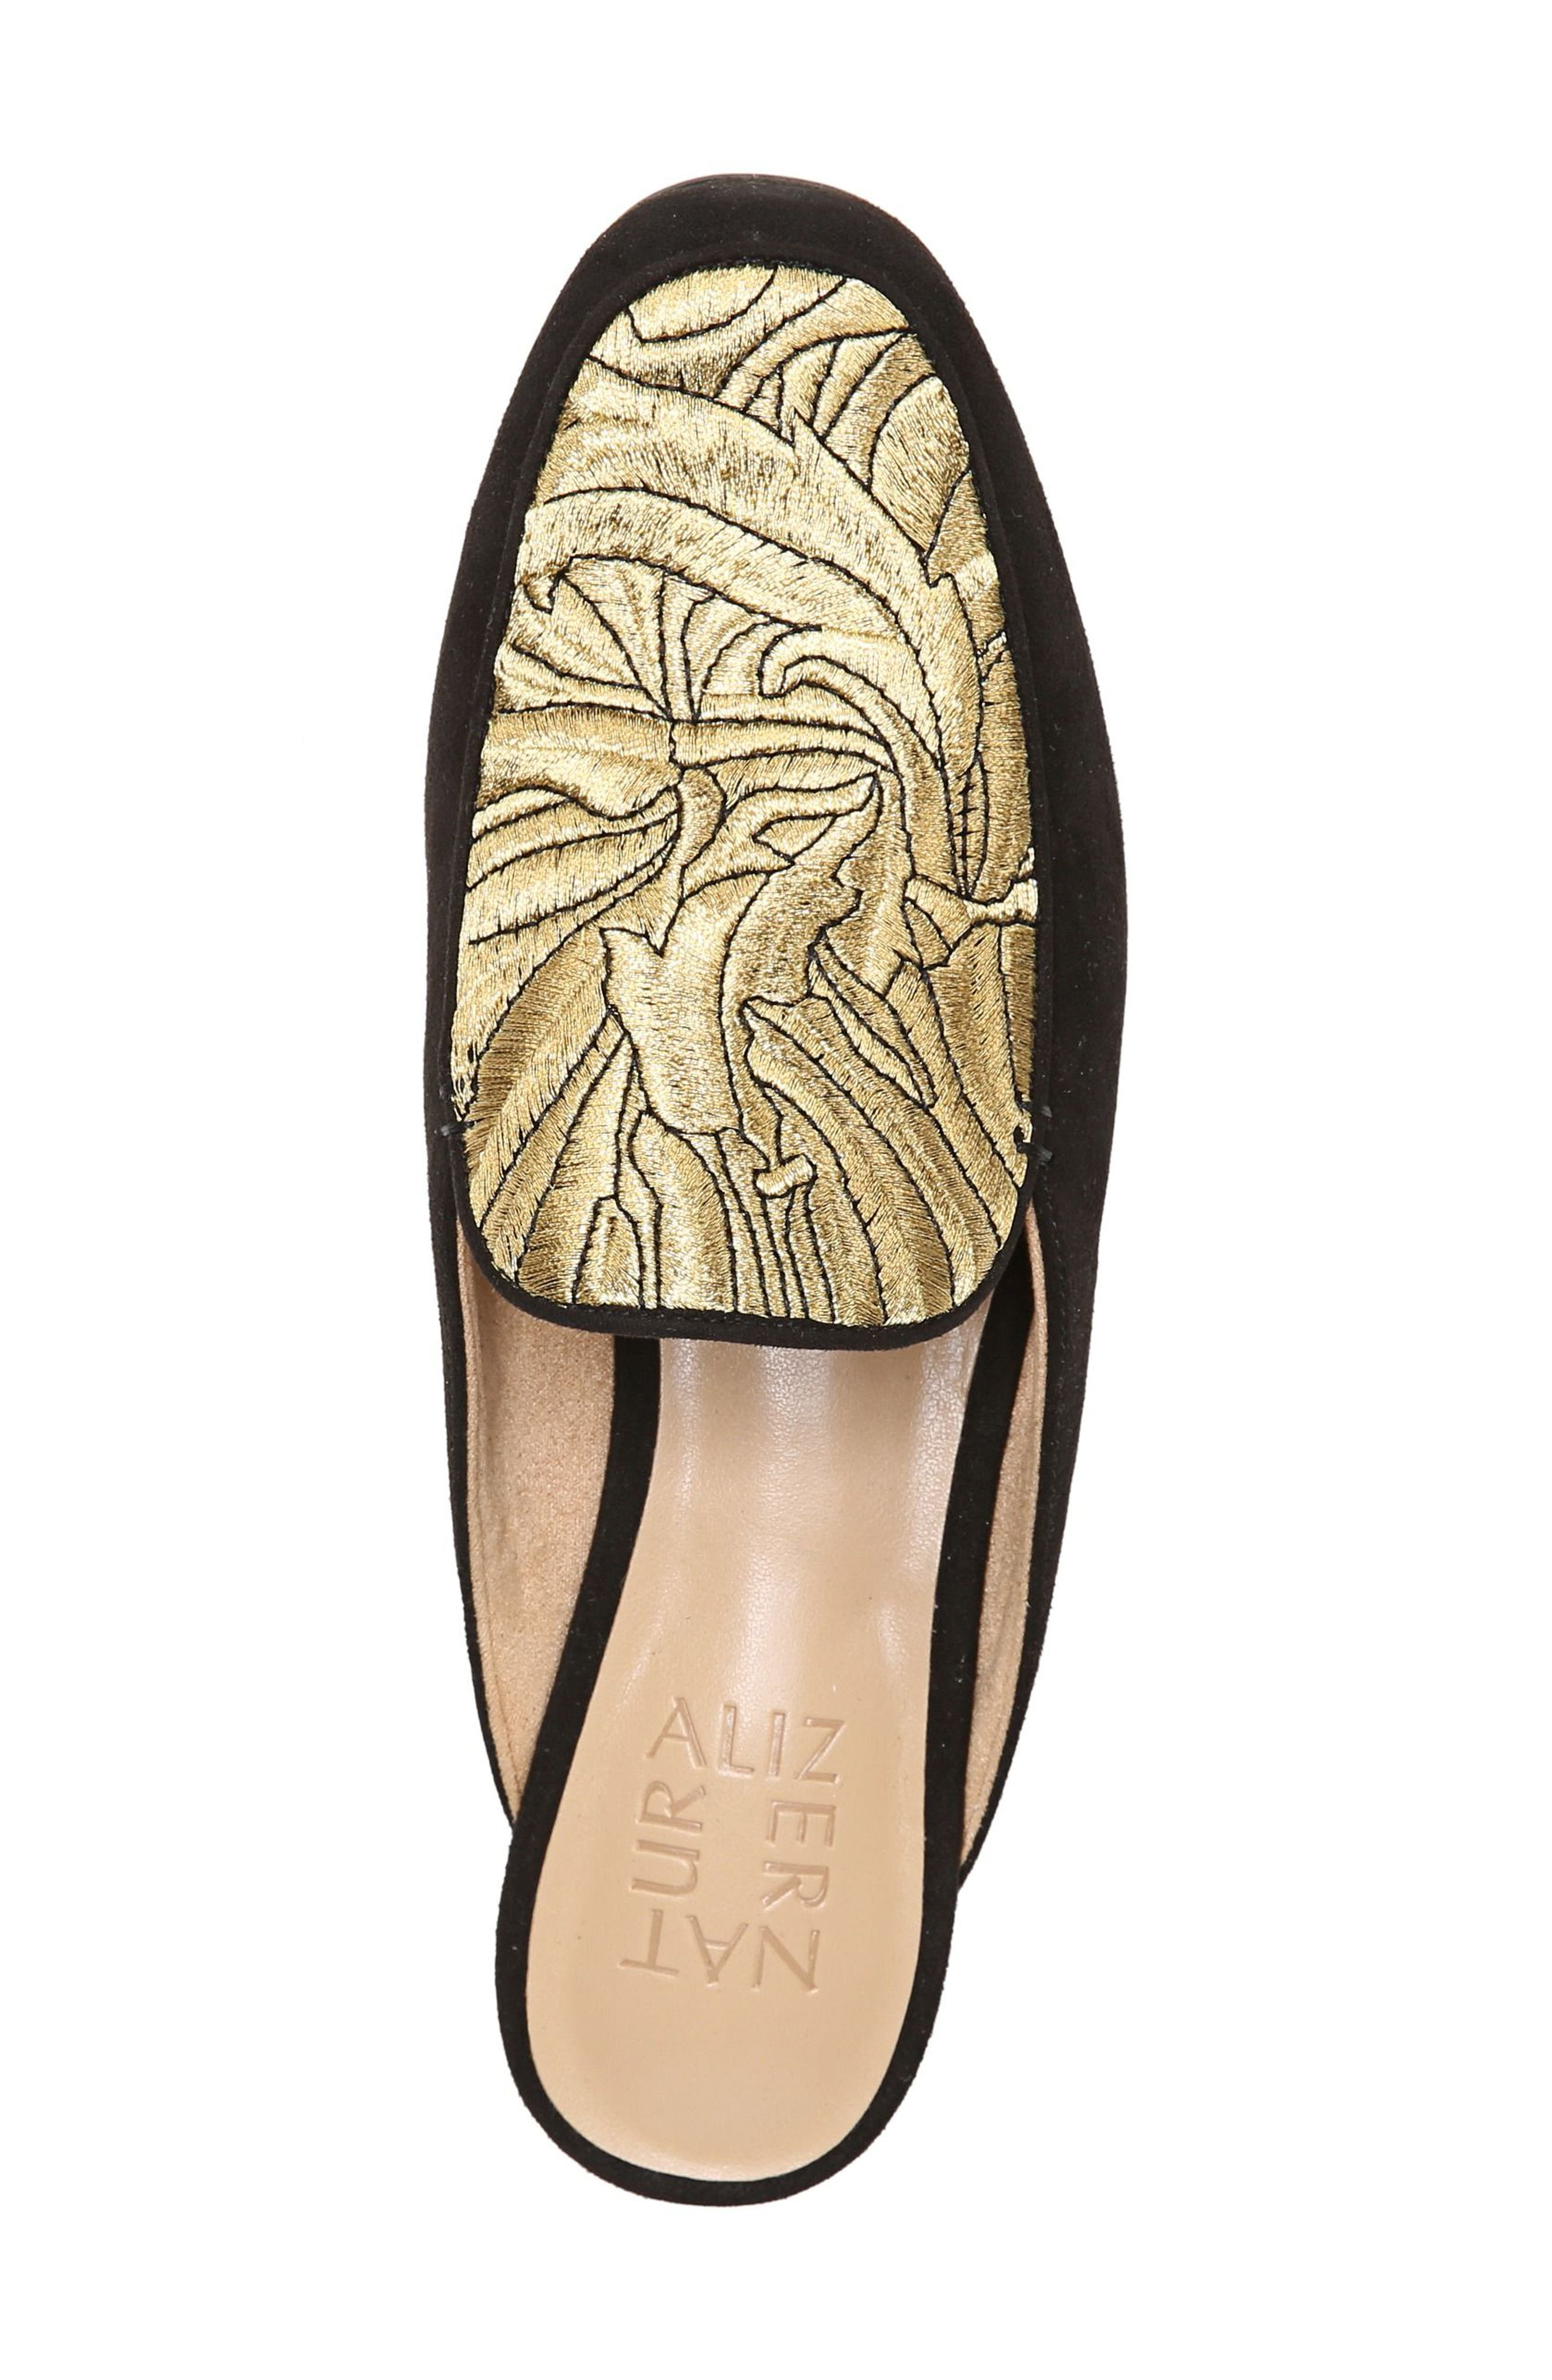 Eden II Embroidered Mule,                             Alternate thumbnail 5, color,                             Black/ Gold Leather